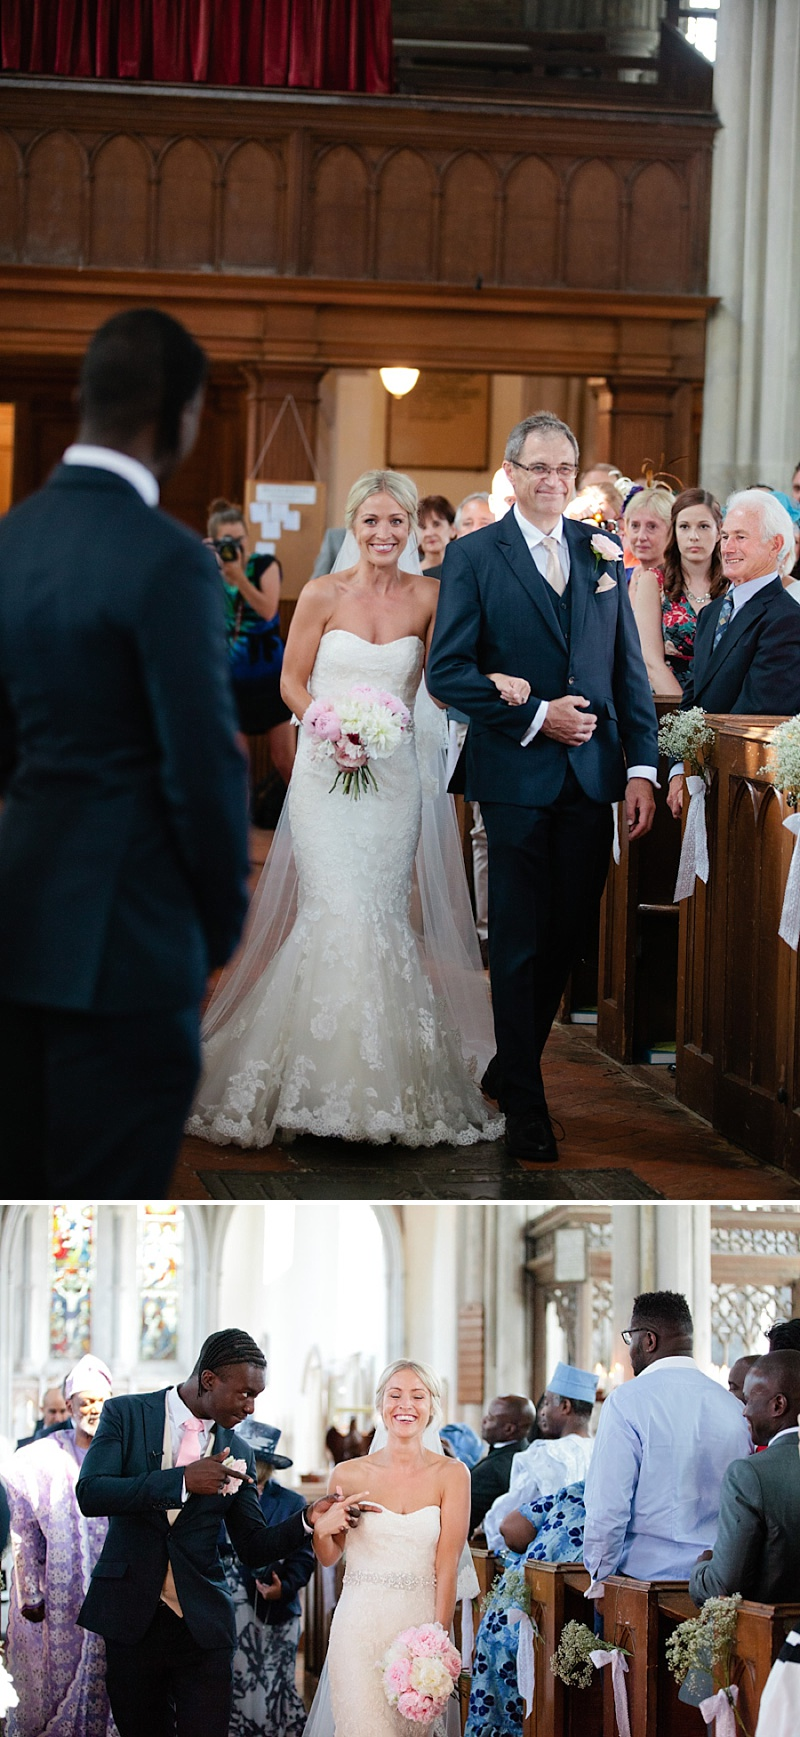 Elegant Church Wedding In Cambridge, Reception At Rectory Farm, Bride In Lace Gown by Benjamin Roberts with Pink Peony Bouquet, Traditional Nigerian Dress, Images by Millie & Belle_0007